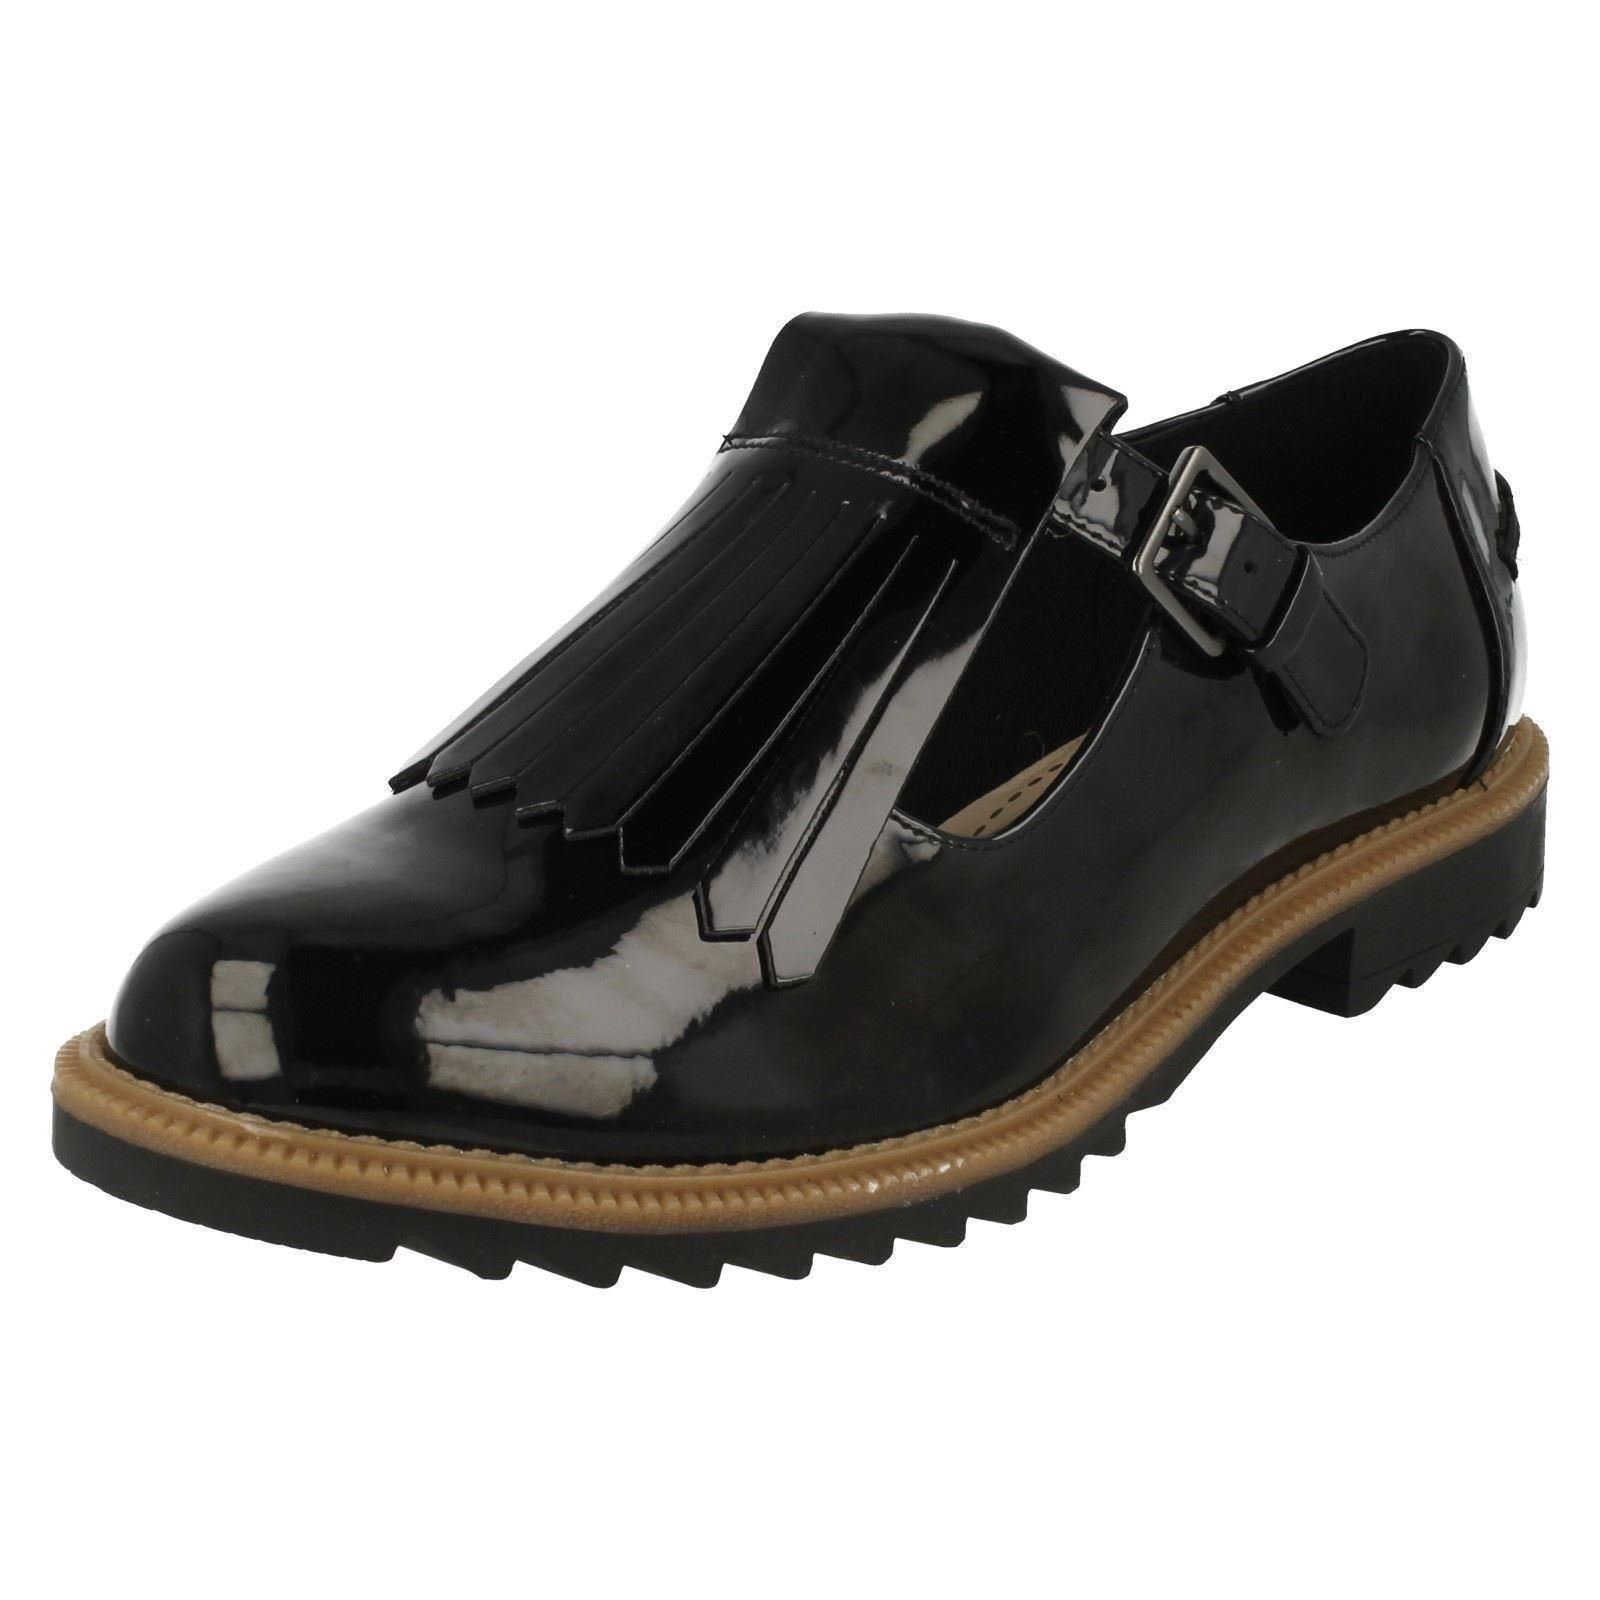 Ladies Griffin Mia4 Leather Shoes by Clarks retail £49.99